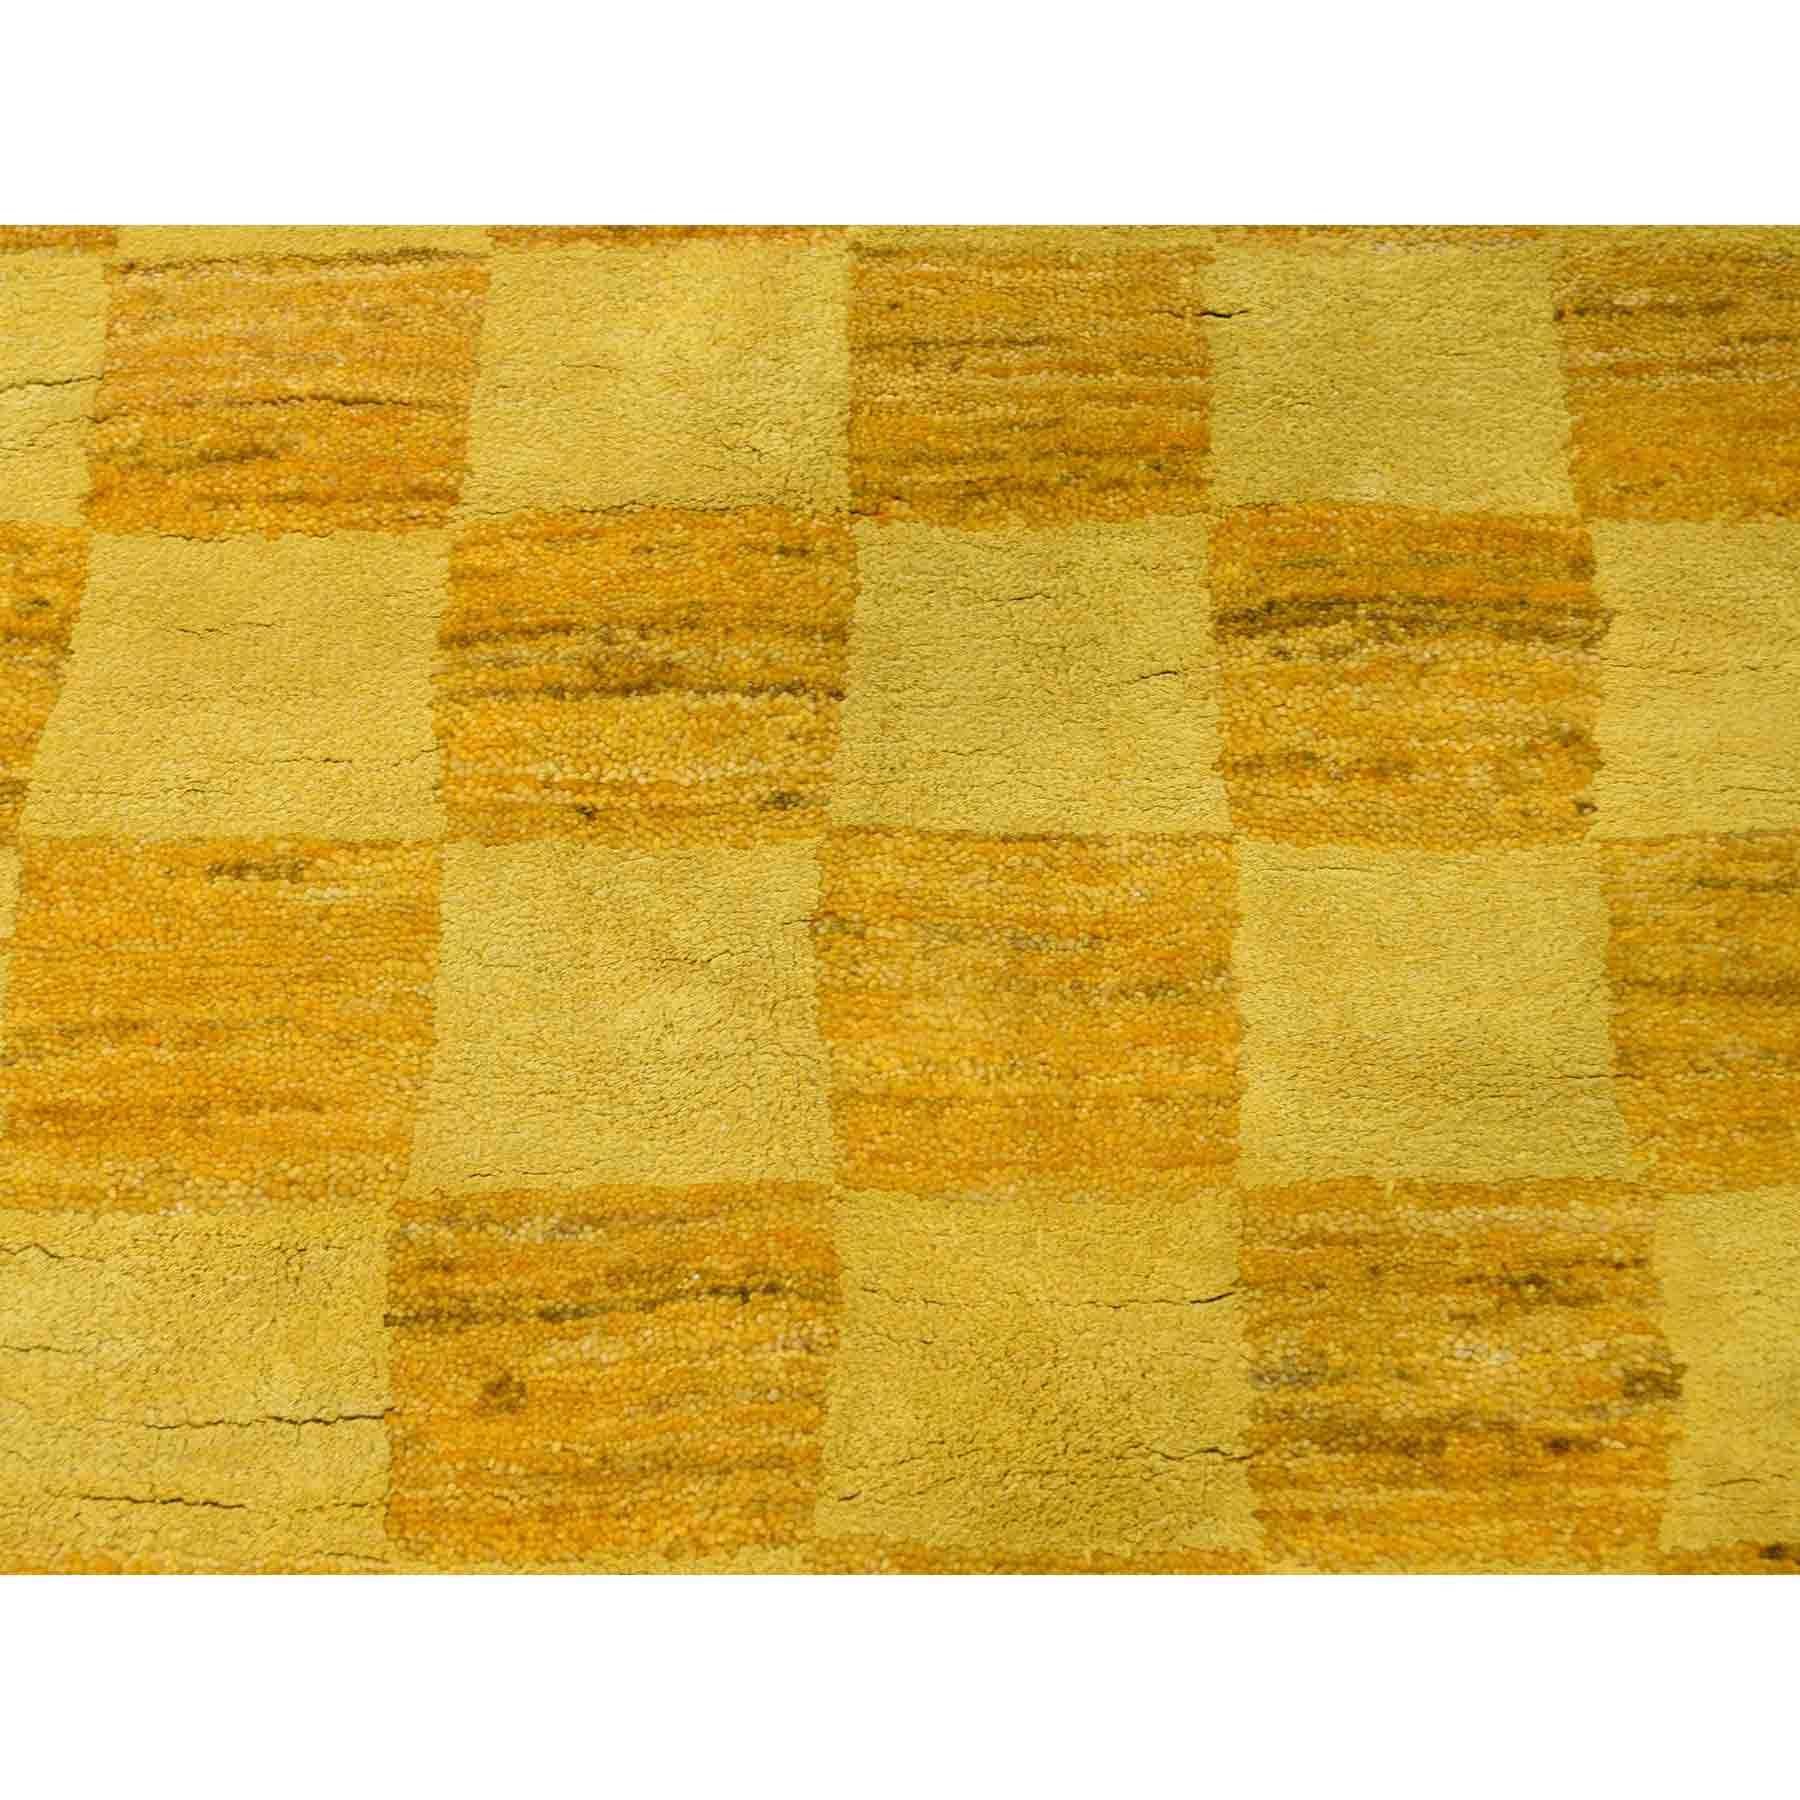 Modern-Contemporary-Hand-Knotted-Rug-220765